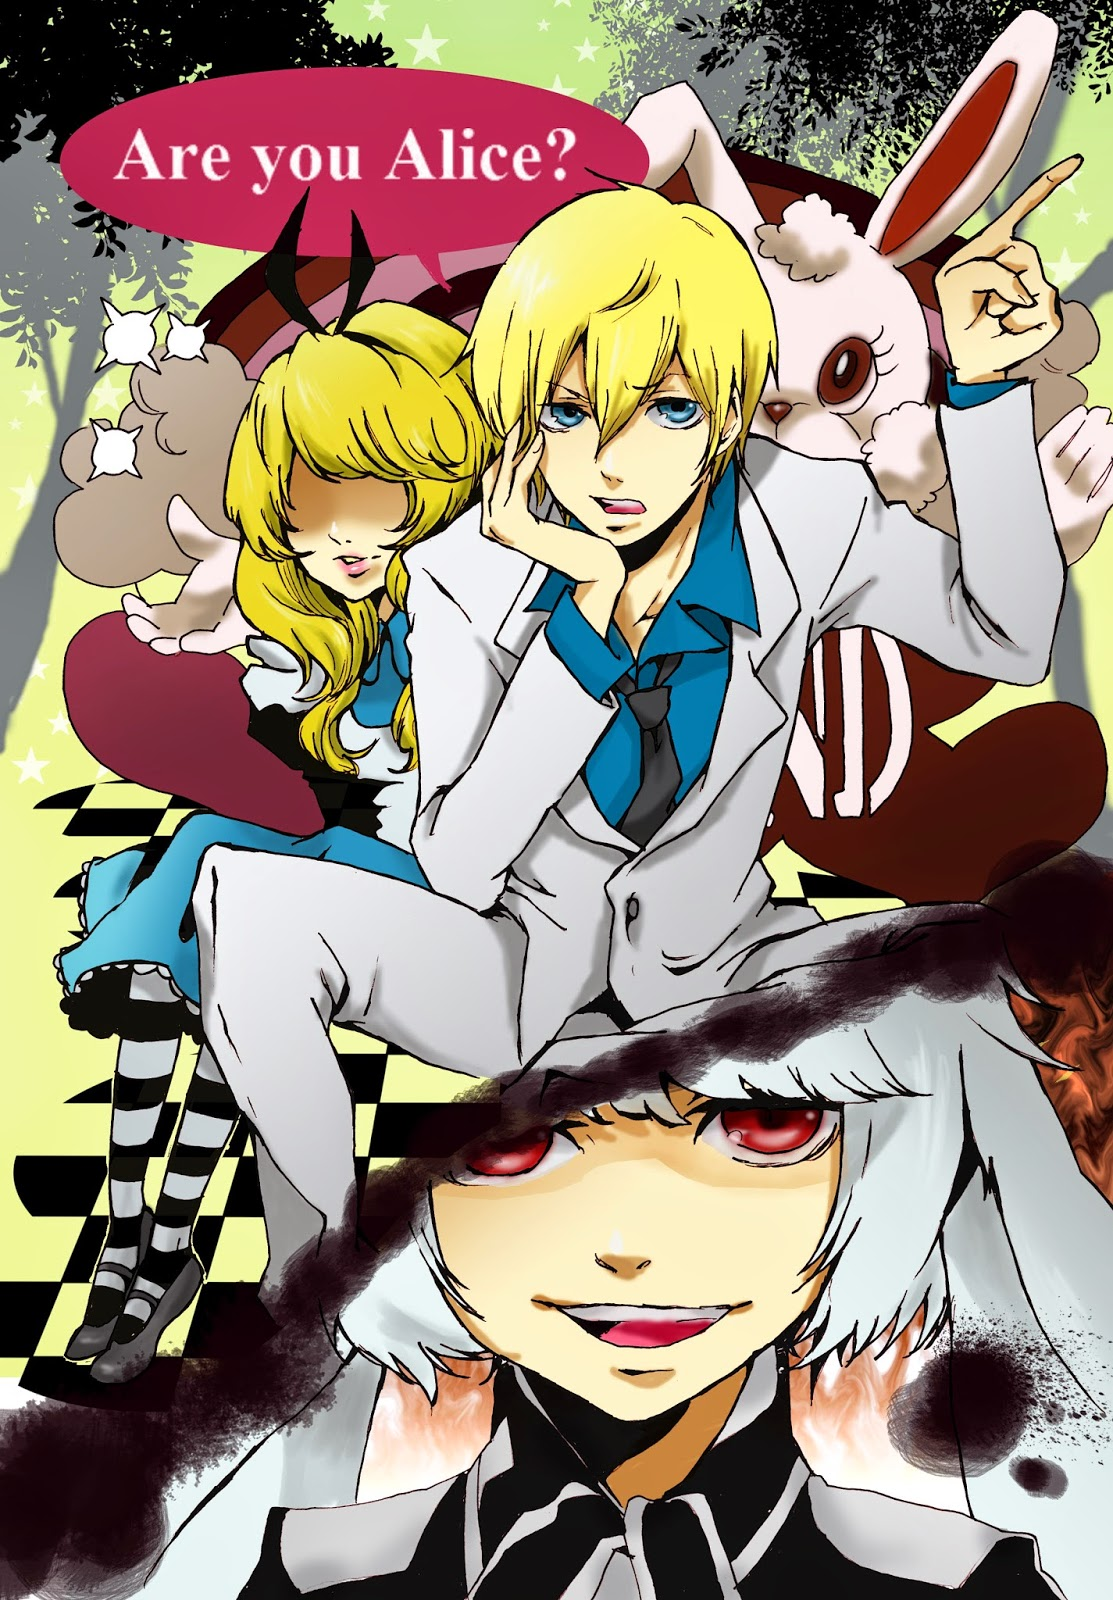 http://br.mangahost.com/manga/are-you-alice